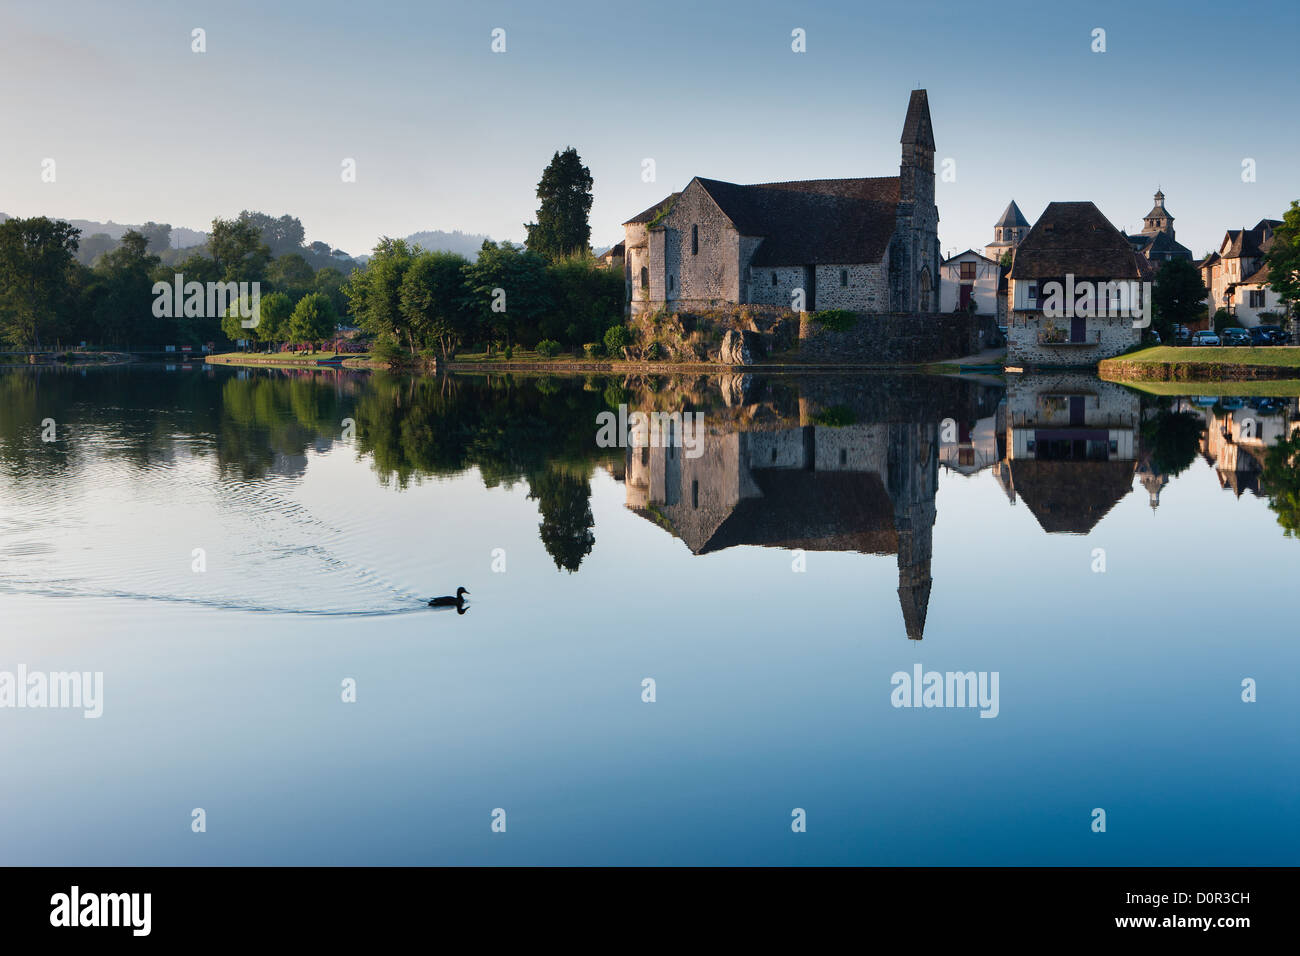 the Dordogne River at Beaulieu sur Dordogne, Corrèze, Limousin, France Stock Photo